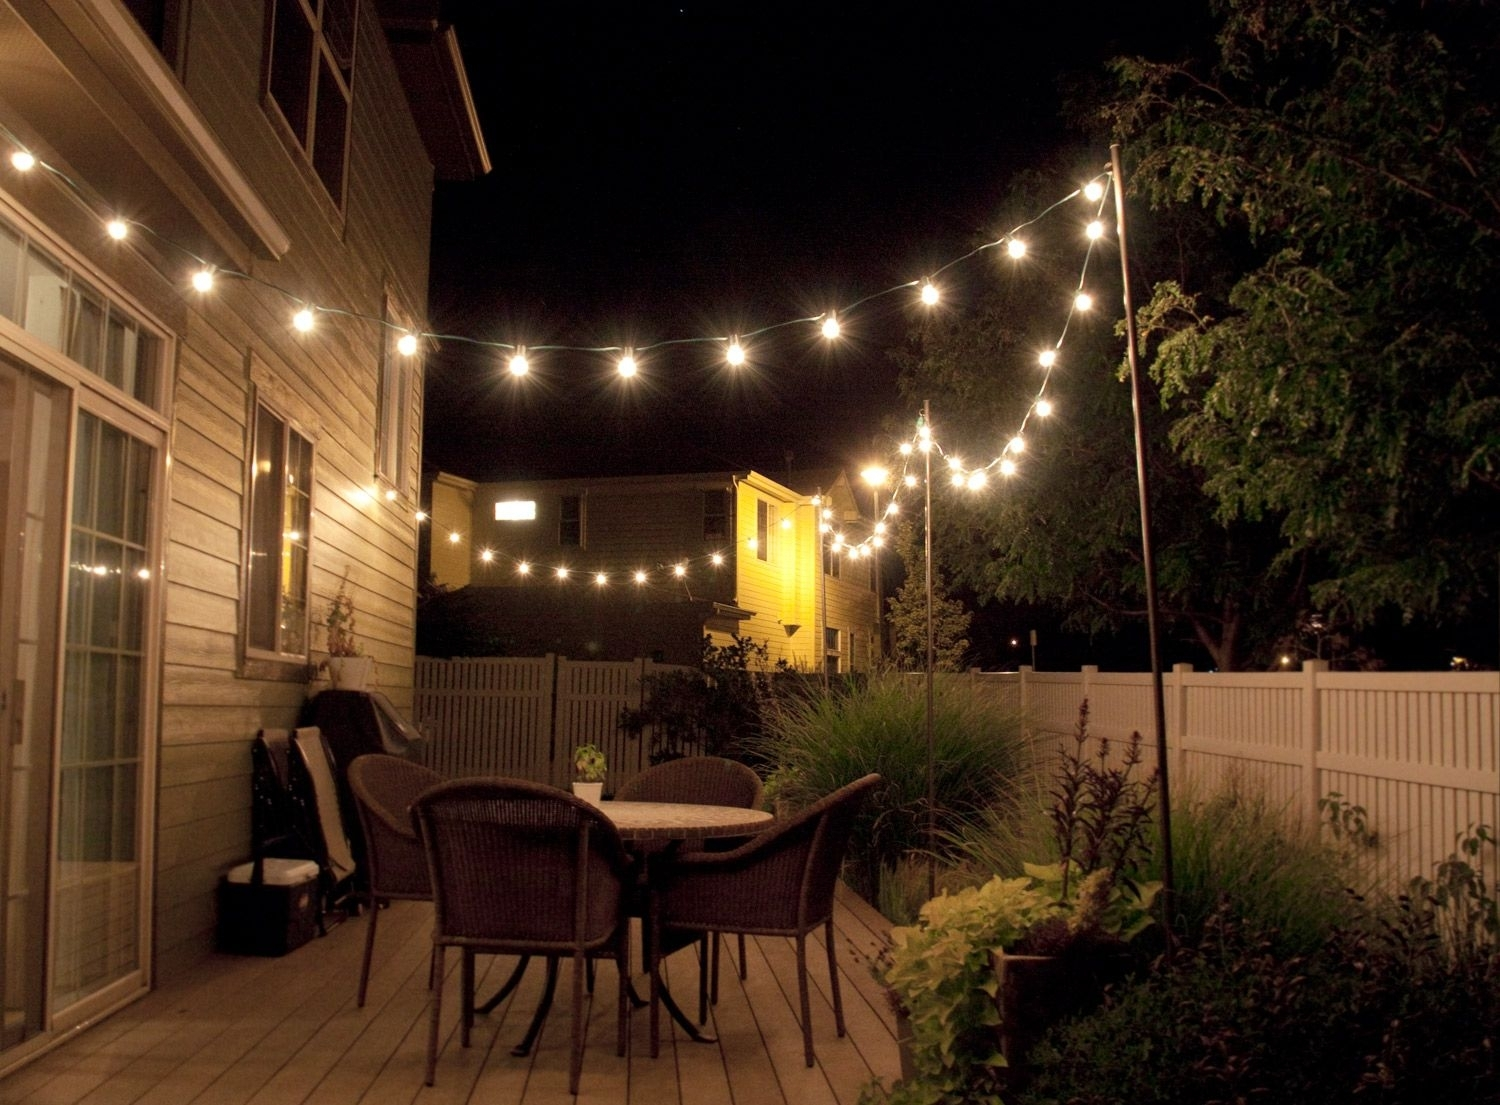 How To Make Inexpensive Poles To Hang String Lights On – Café Style Regarding Outdoor Hanging Party Lights (#6 of 15)